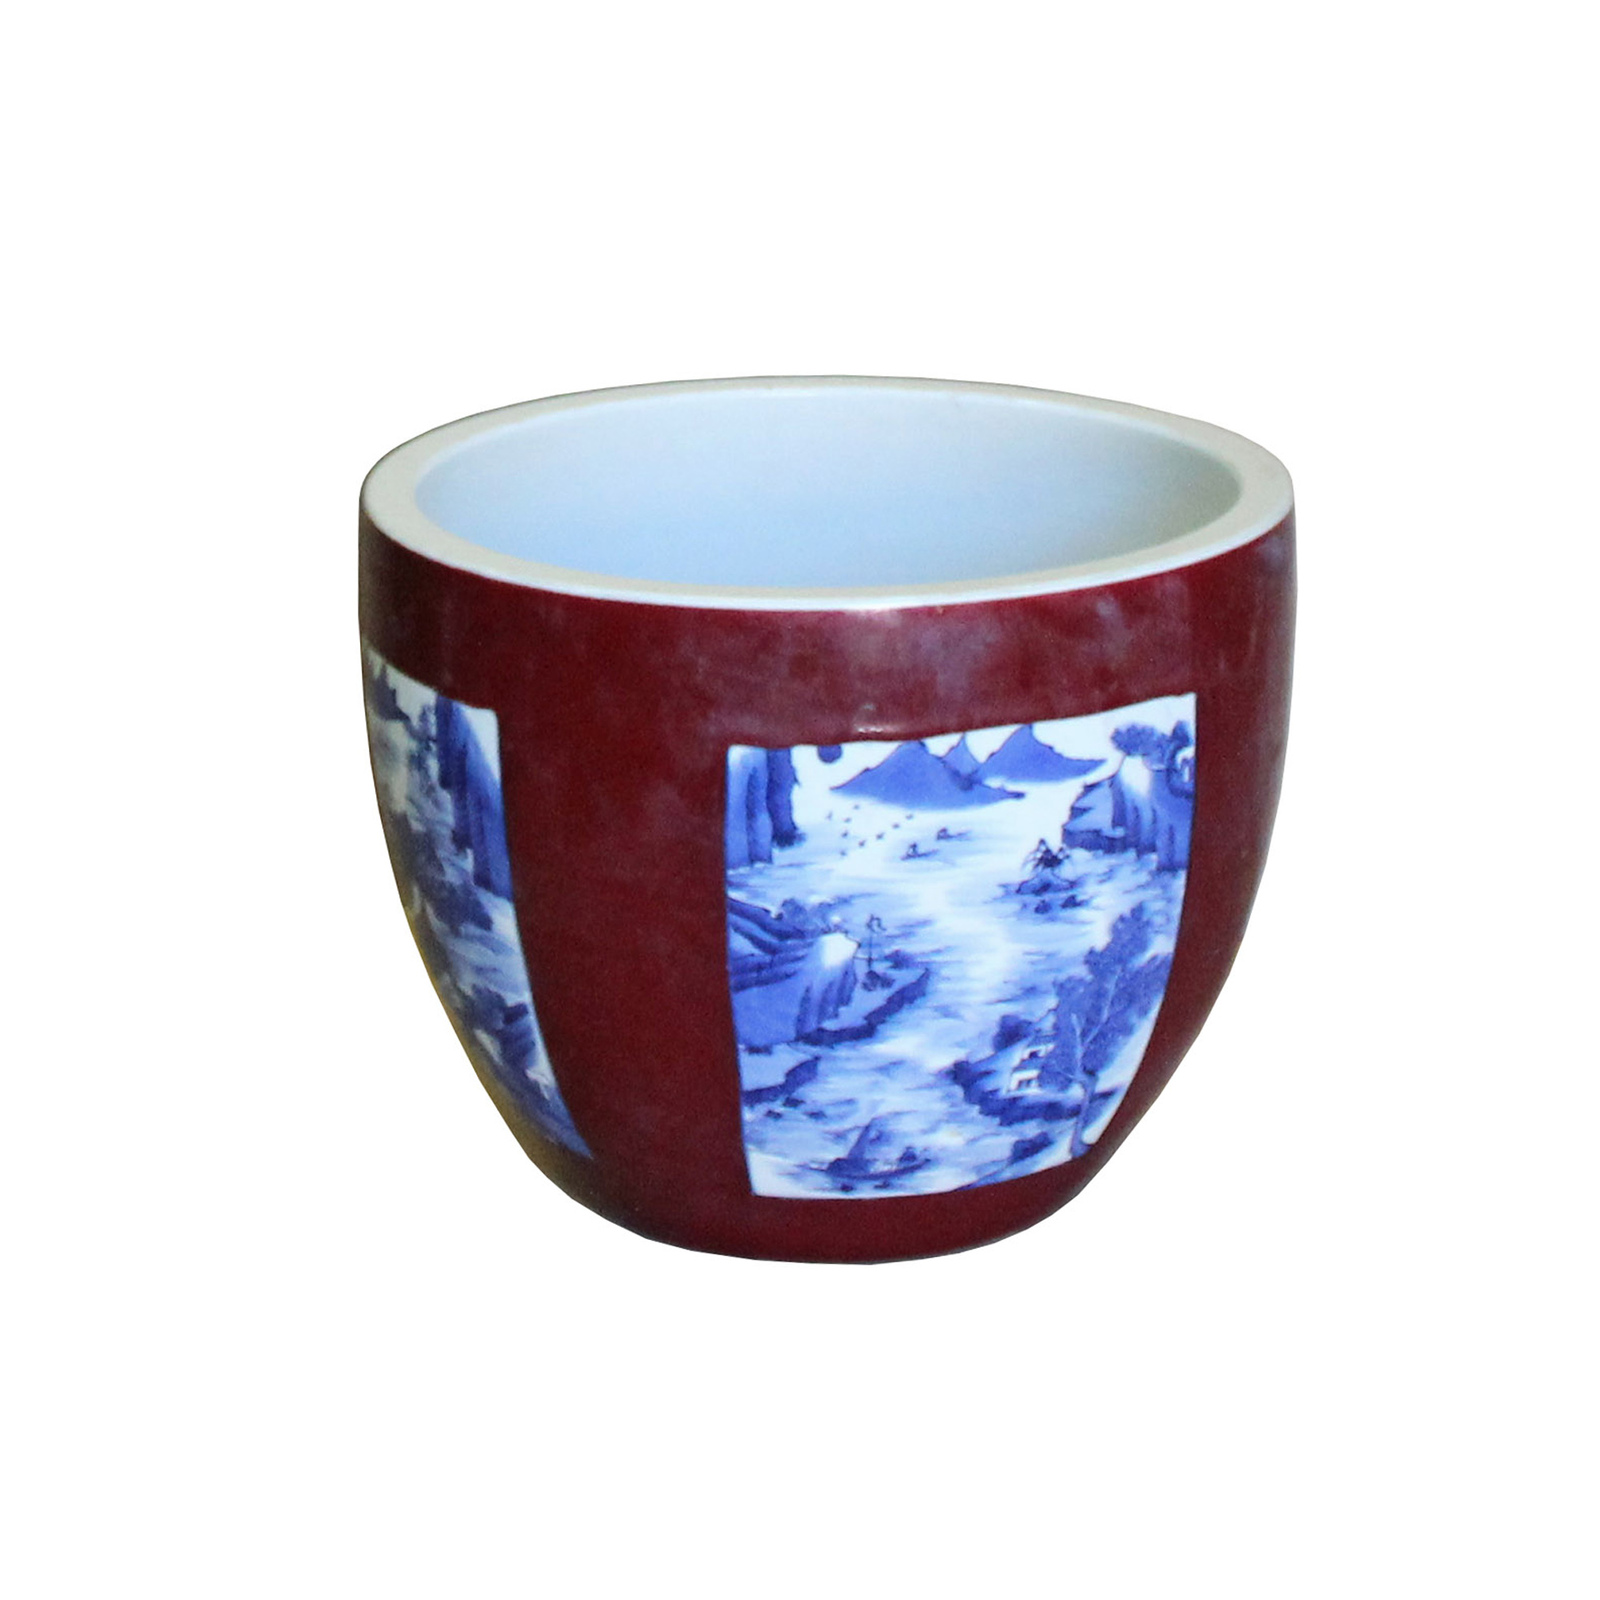 Primary image for Chinese Red Blue & White Oriental Graphic Ceramic Pot Planter cs4275